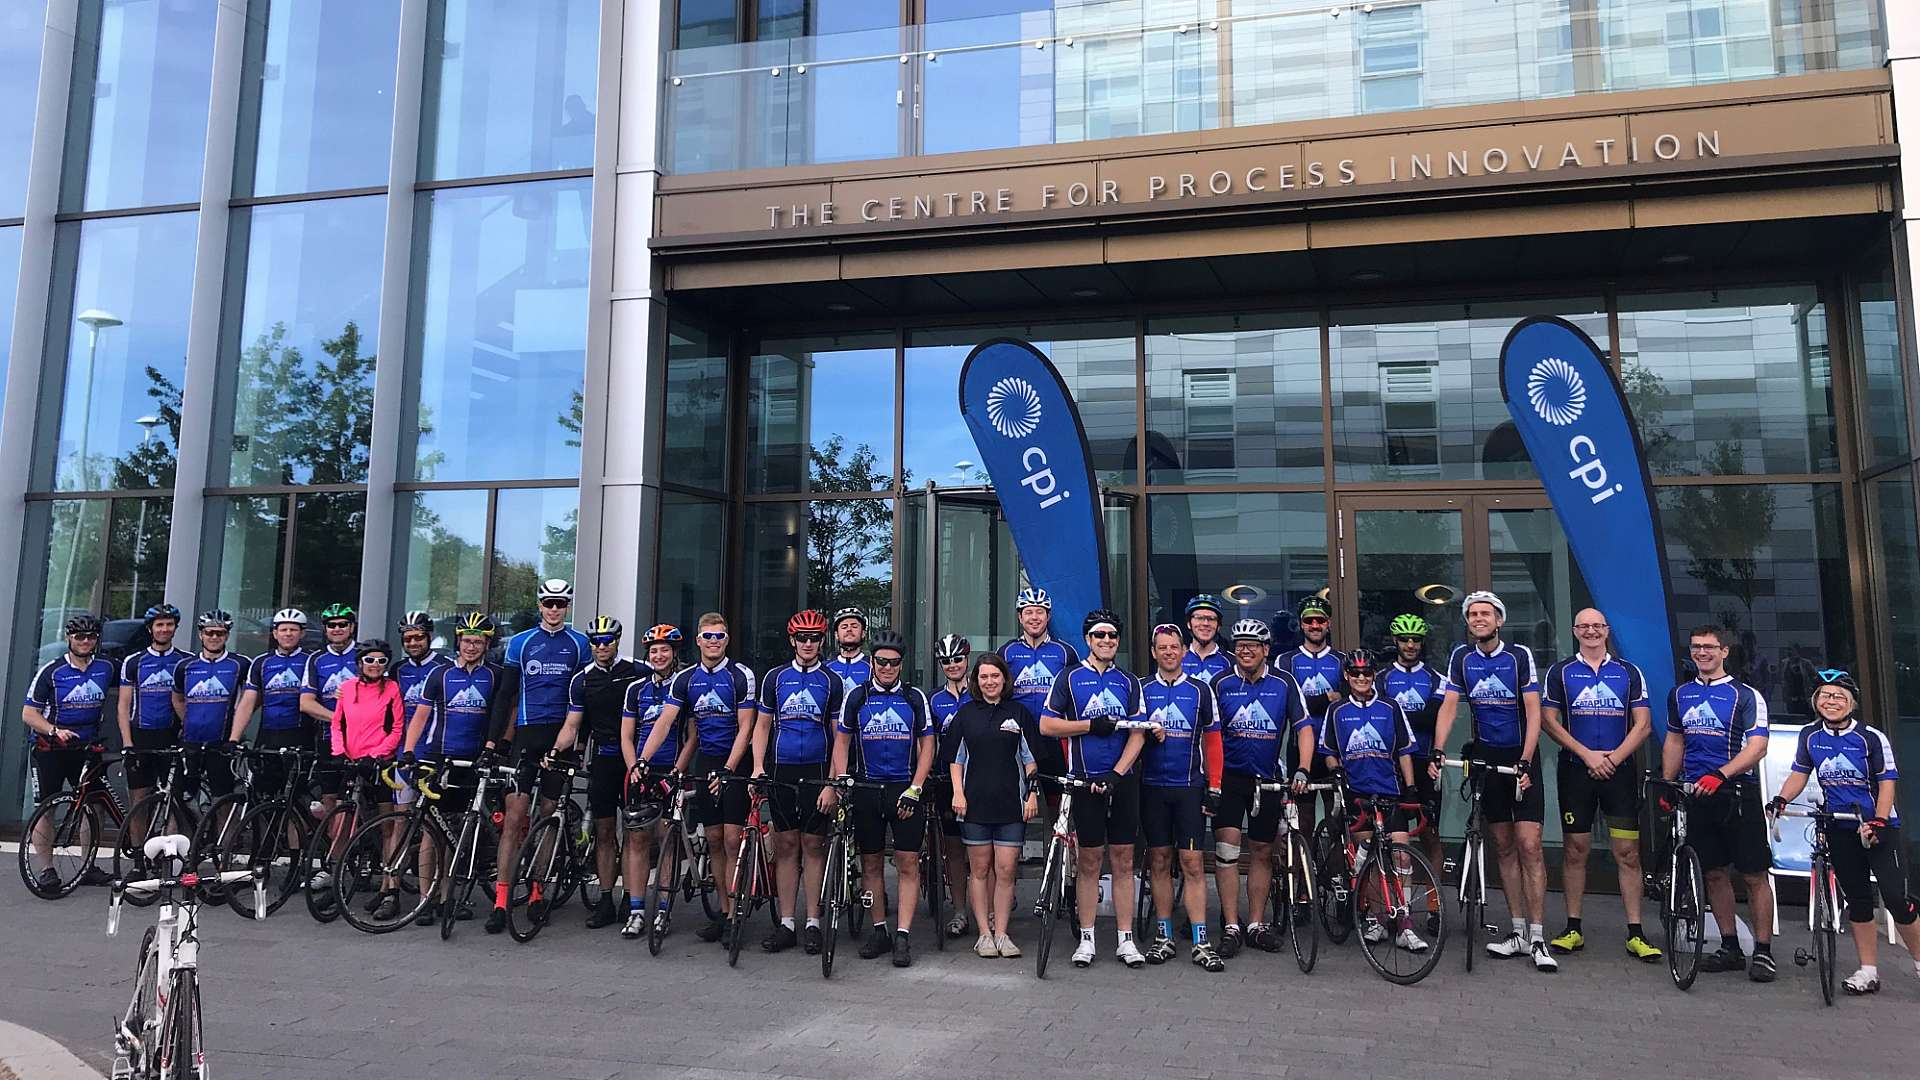 Cycle challenge team with cyclists representing all seven HVM Catapult Centres